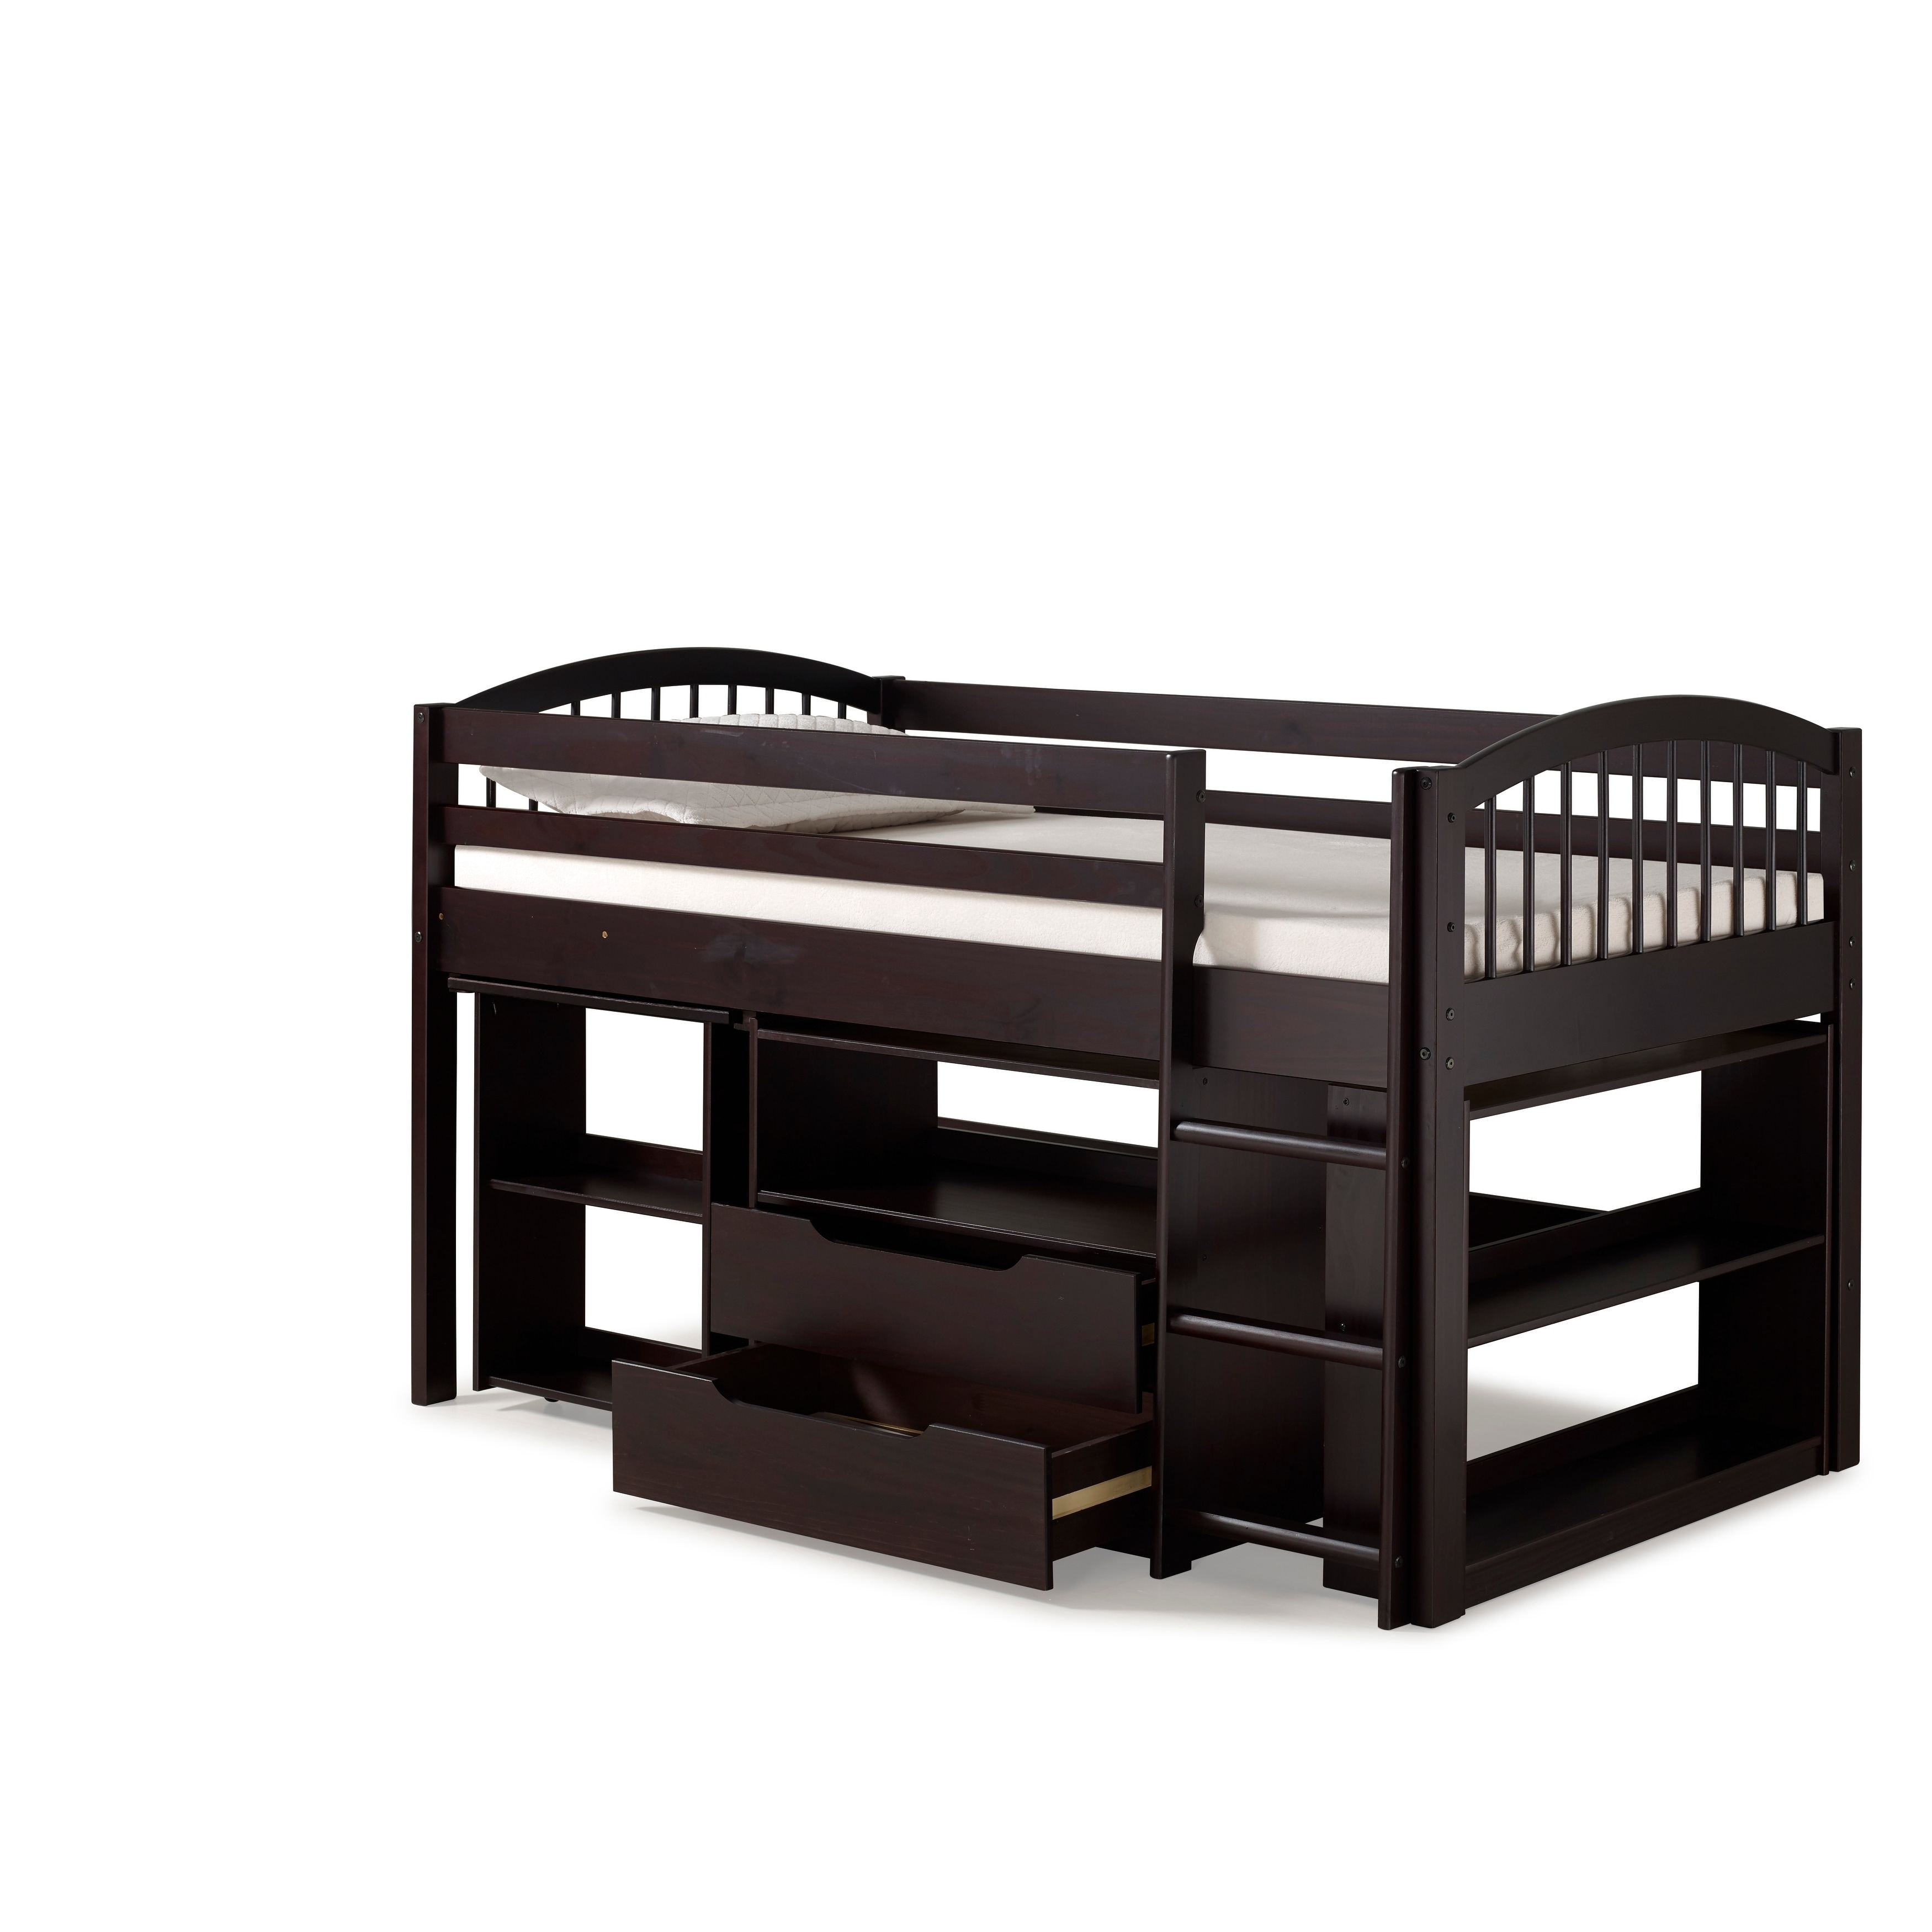 Fabulous Addison Junior Low Loft Bed With Storage Drawers Desk And Bookshelf Solid Wood Download Free Architecture Designs Jebrpmadebymaigaardcom